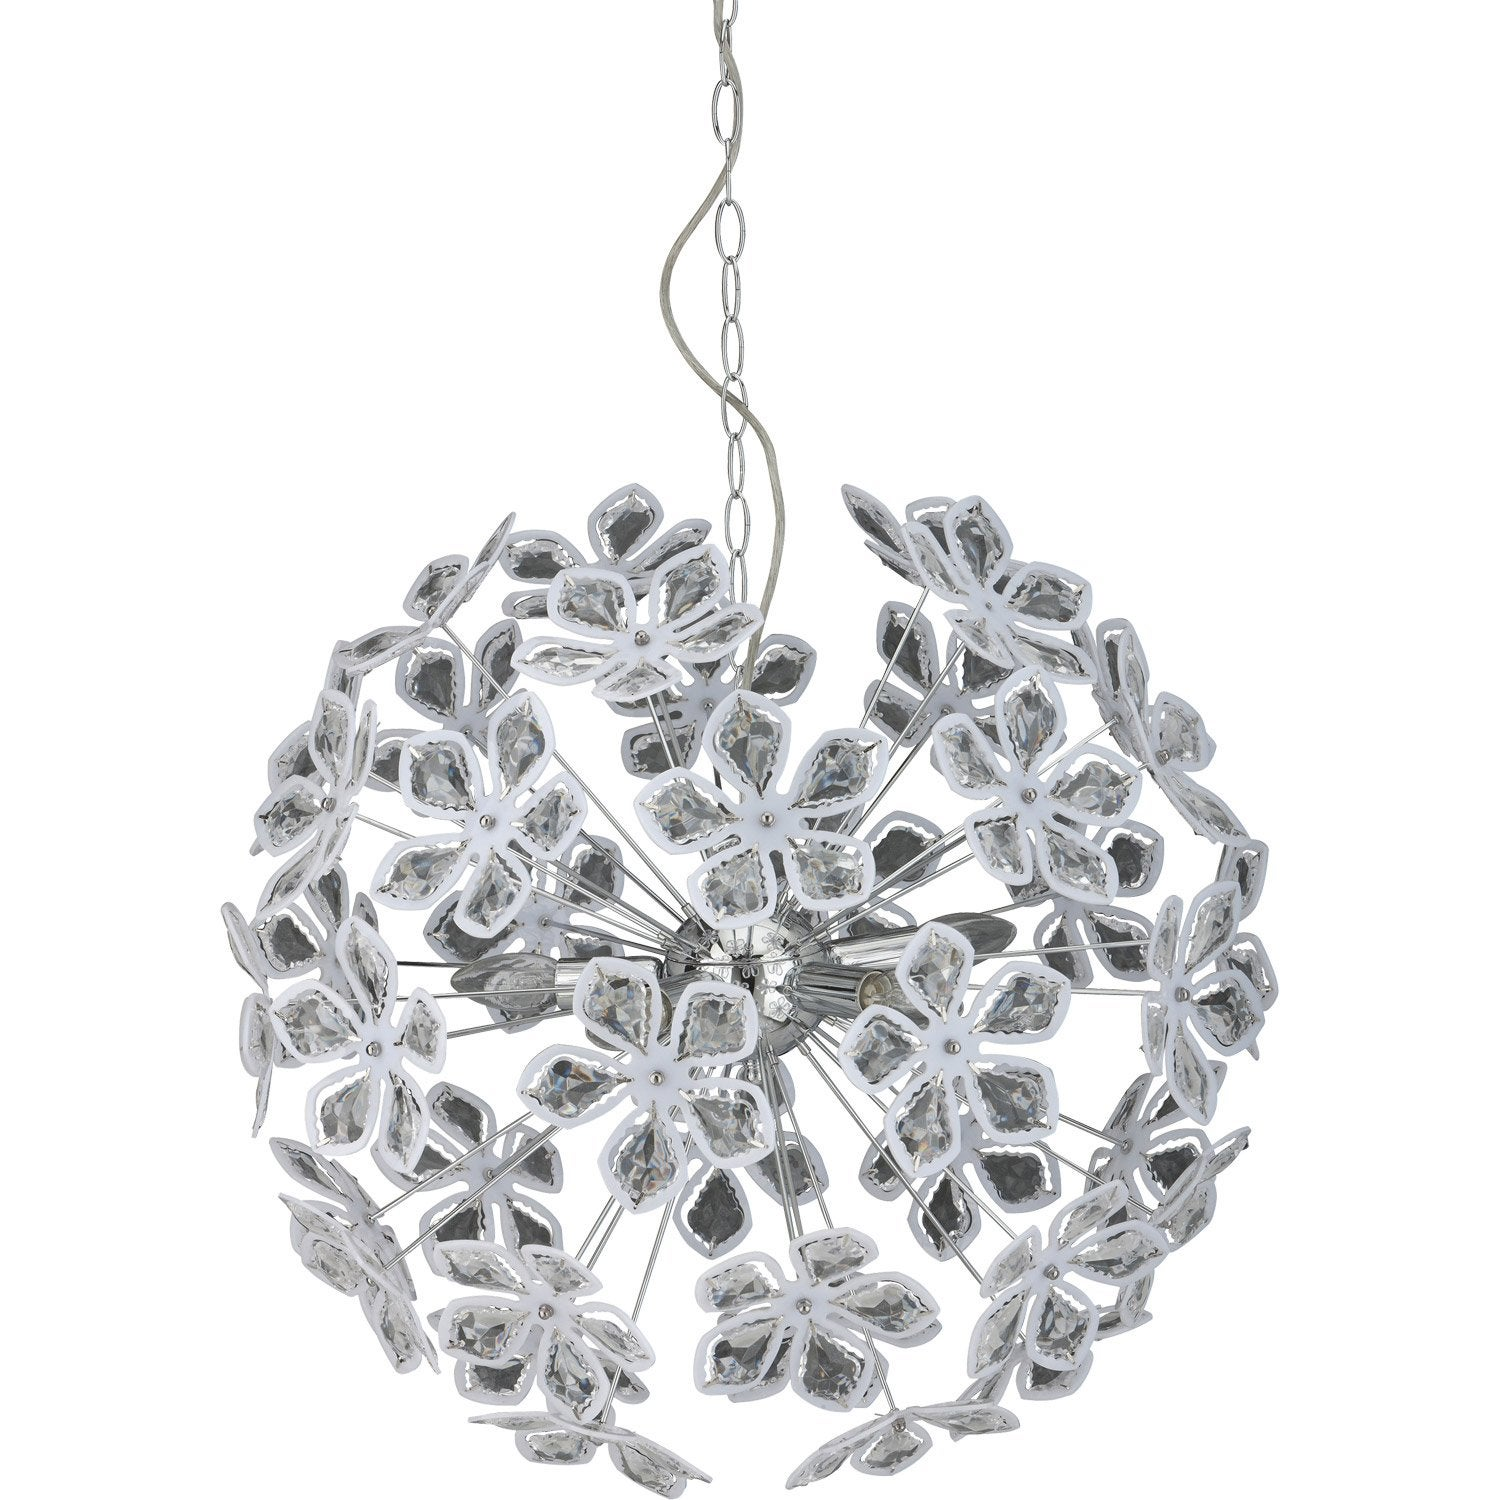 Suspension moderne fleurs m tal chrom 5 x 40 w sampa helios leroy merlin - Suspension new york leroy merlin ...